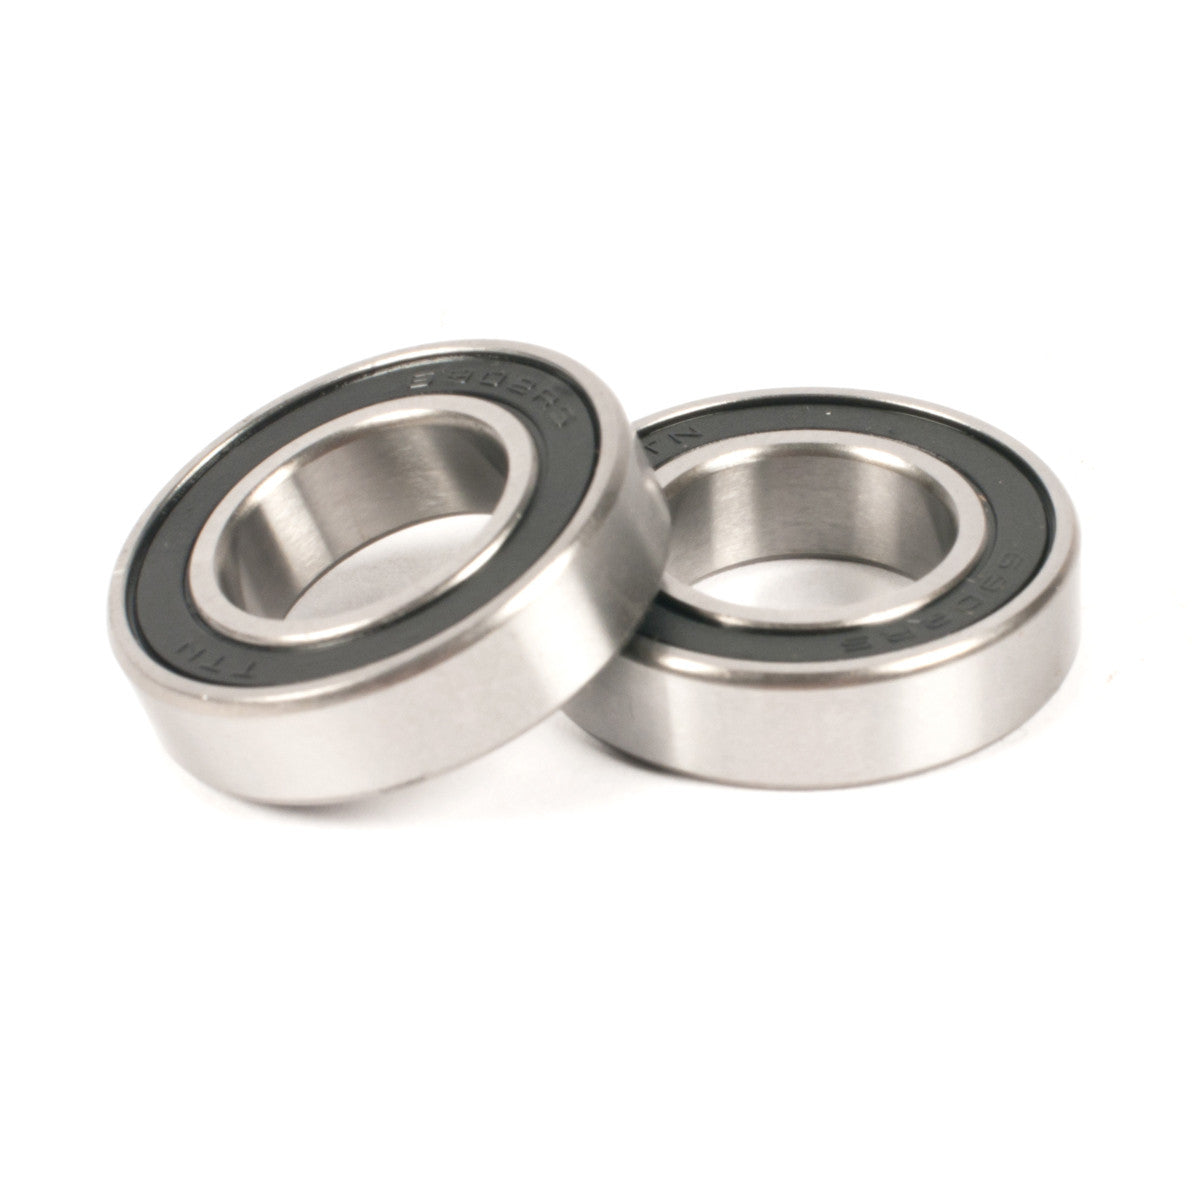 Recruit JR Rear Hub Bearings (Pair) - BMX Parts